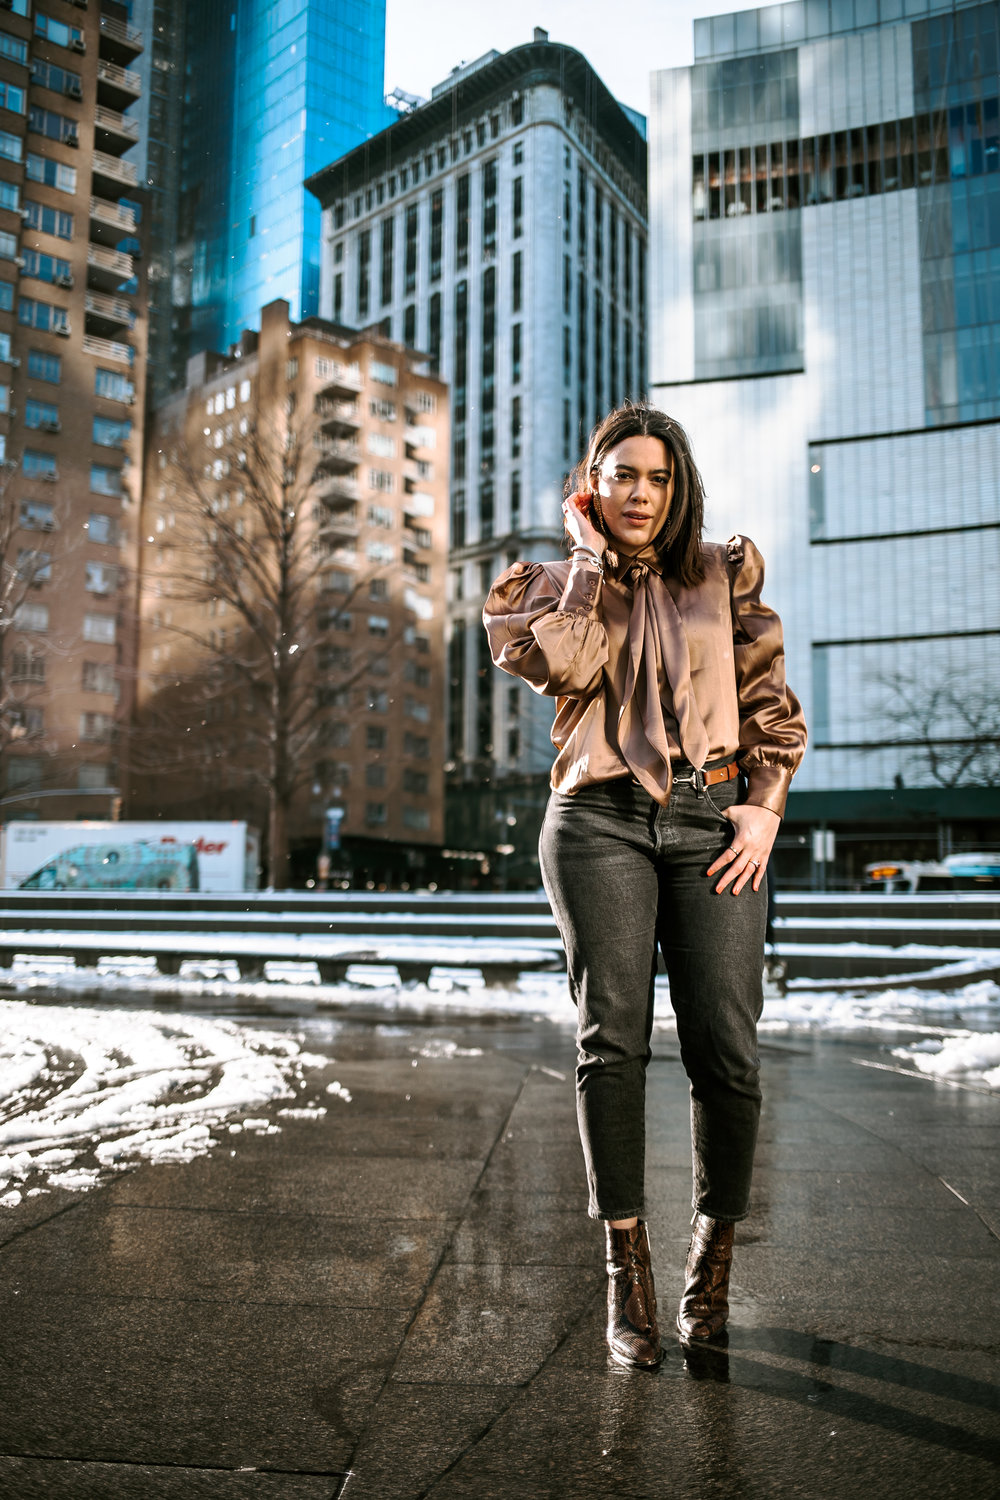 how-to-style-puff-sleeve-blouse-inspr-brittany-xavier-leavis-wedgie-jeans-latina-new-york-city-fashion-blogger-style-operator-winter-fashion.jpg